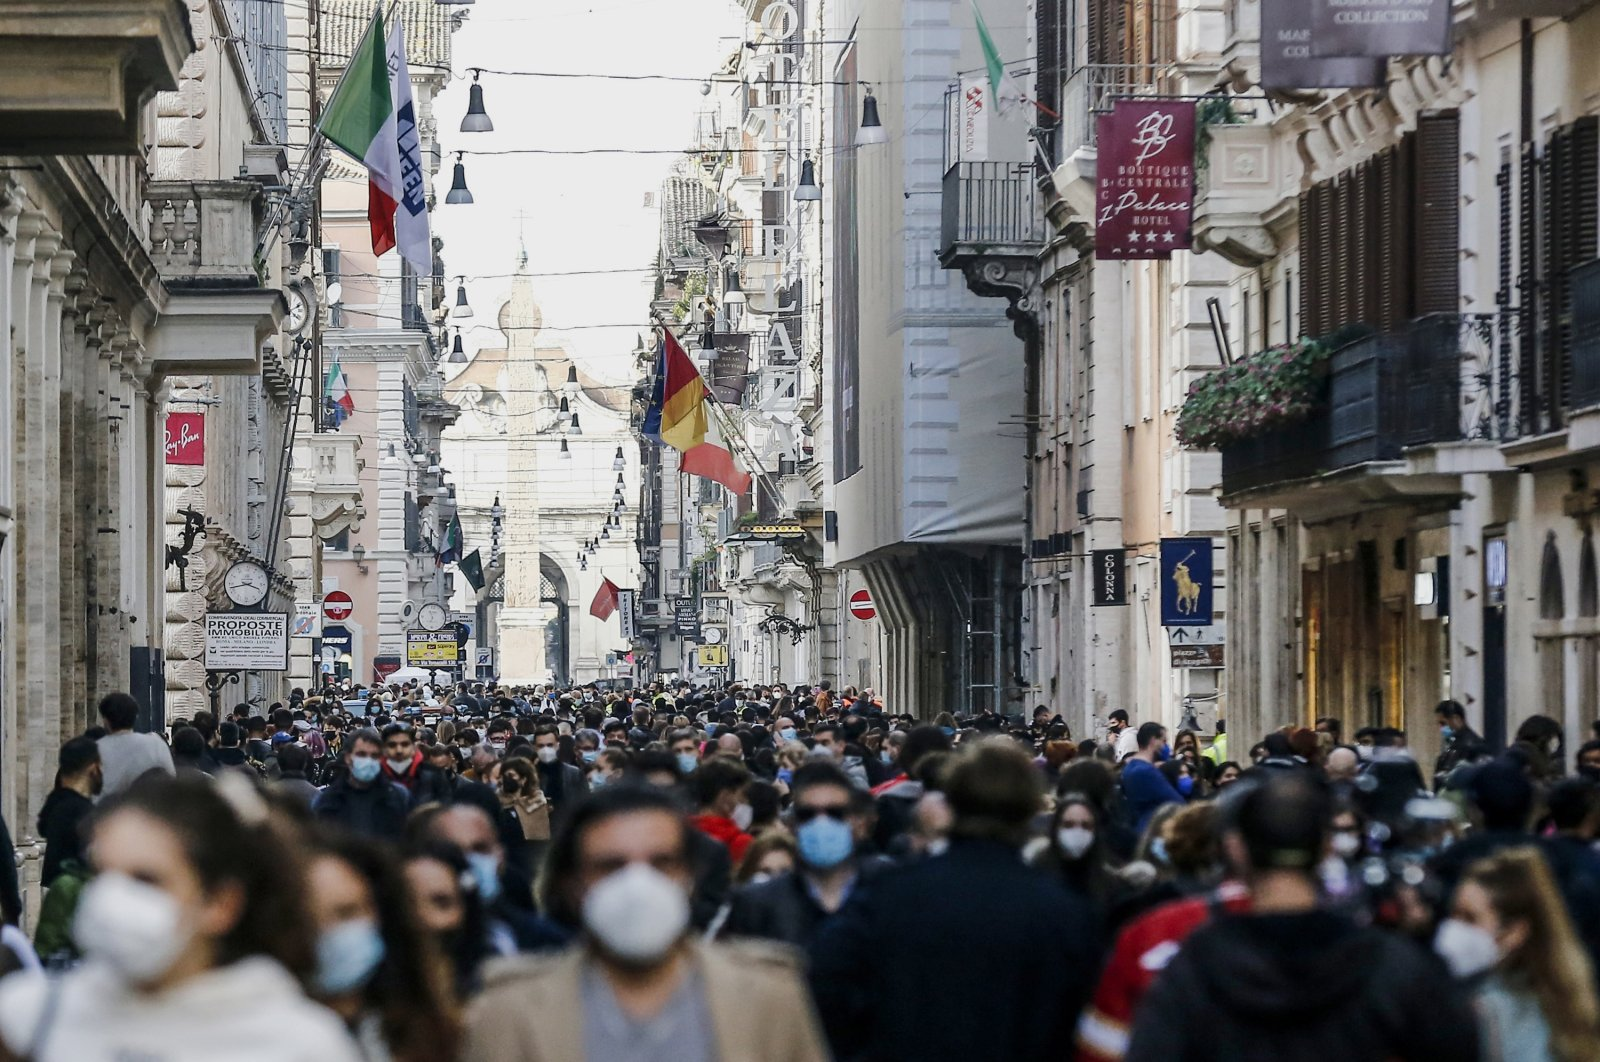 People crowd Via del Corso shopping street in Rome, following the ease of restriction measures to curb the spread of COVID-19, Feb. 7, 2021. (AP Photo)